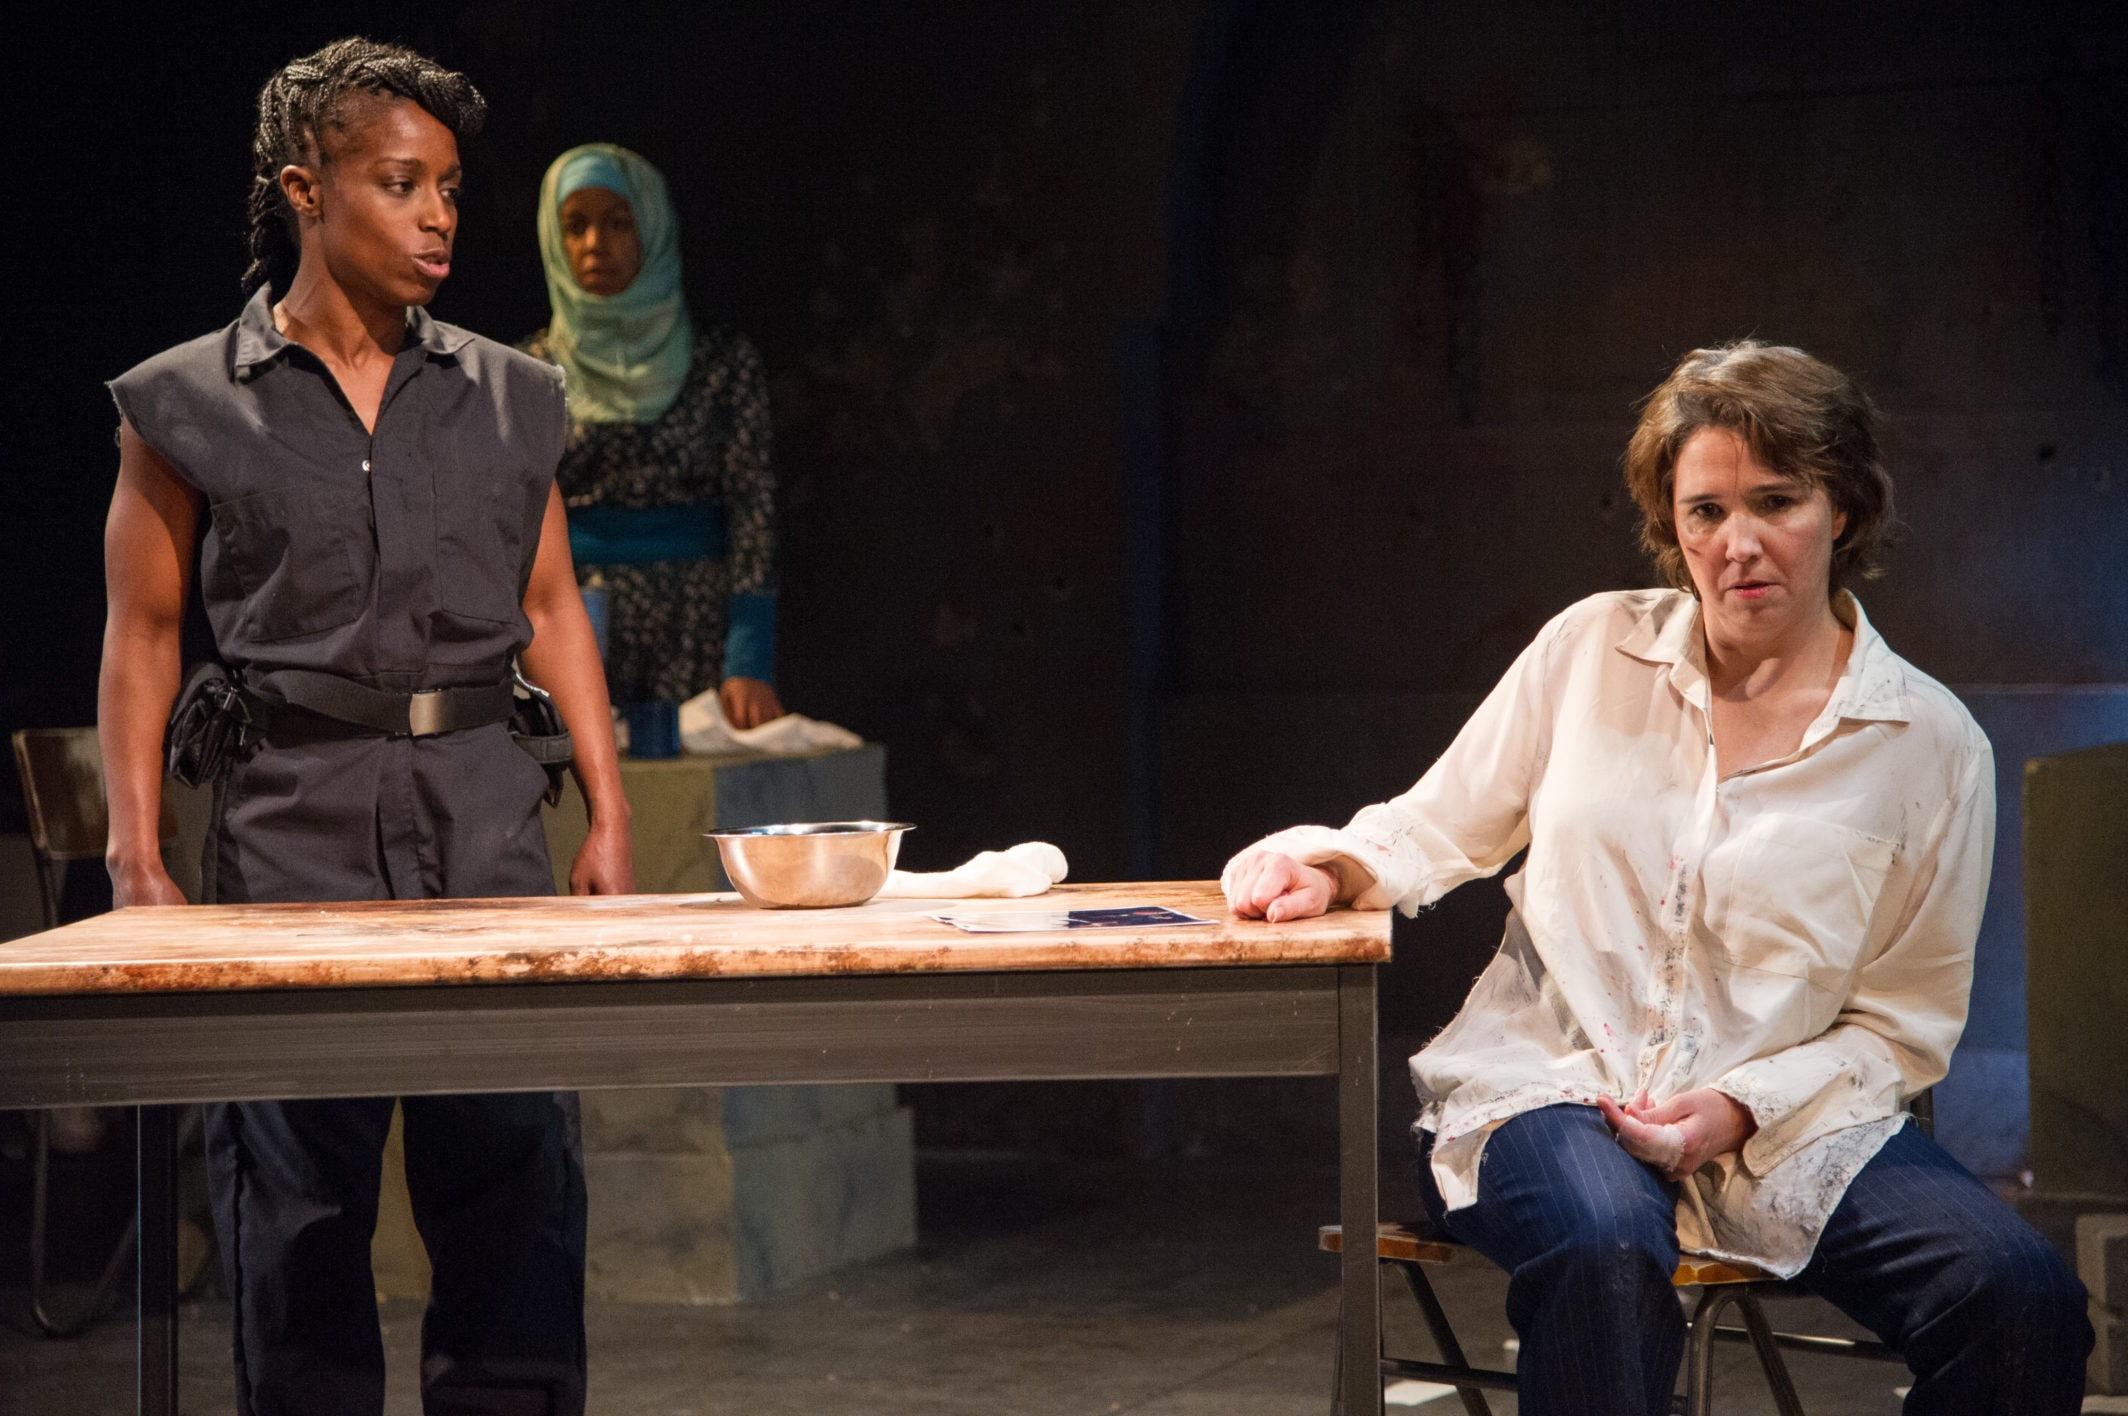 Felicia Curry, Yesenia Iglesias, and Holly Twyford in 'Masterpieces of the Oral and Intangible Heritage of Humanity' at Signature Theatre. Photo by C. Stanley Photography.